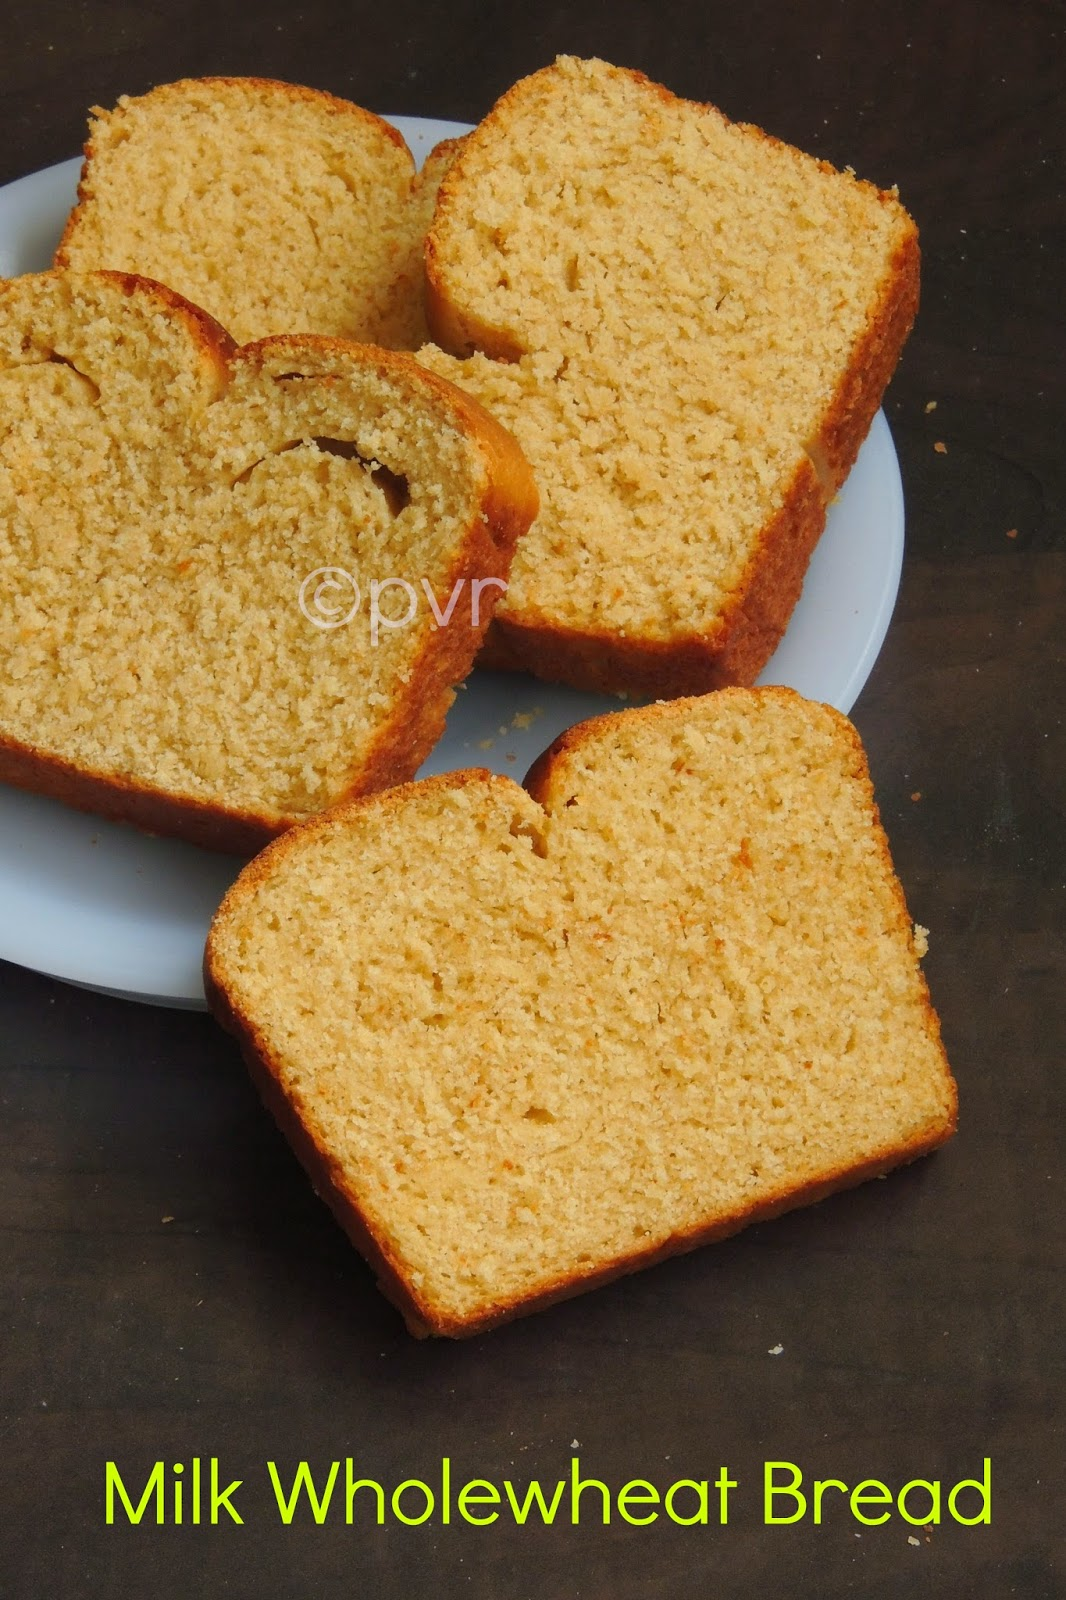 Wheat Milk Bread, Milk Wheat Bread, Wholewheat milk Bread